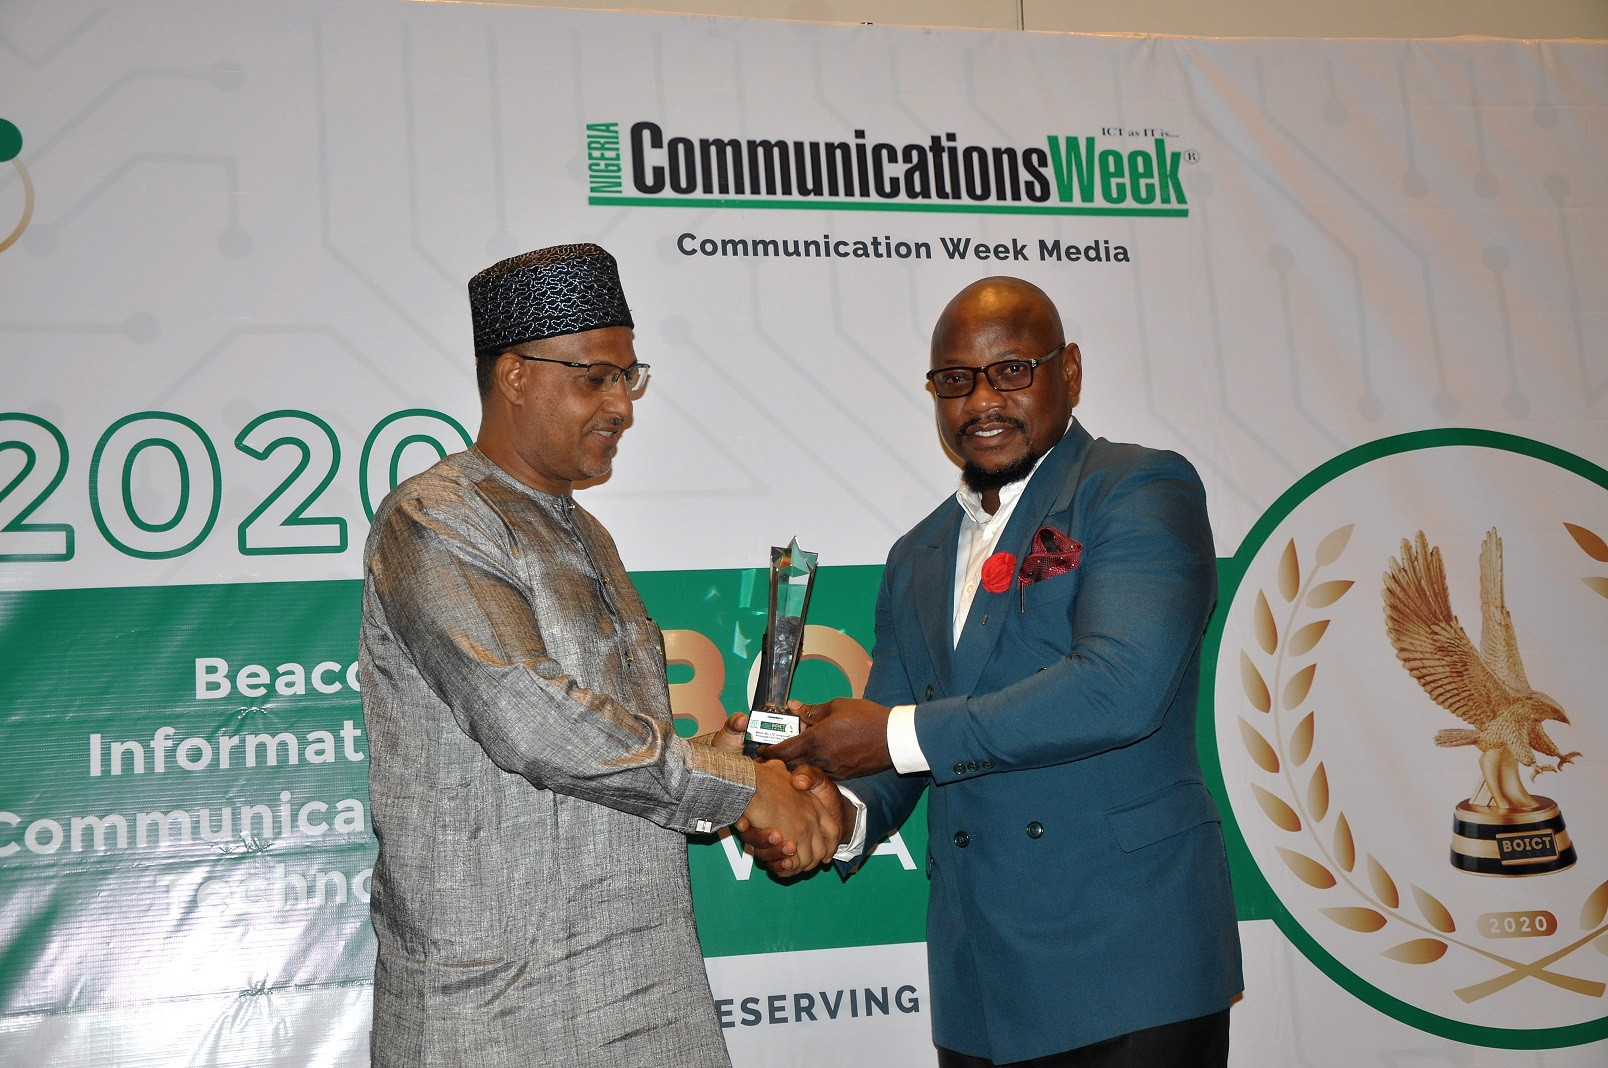 Spectranet 4G LTE Shines at BoICT 2020 awards Wins Best 4G LTE Internet Service Provider of the year